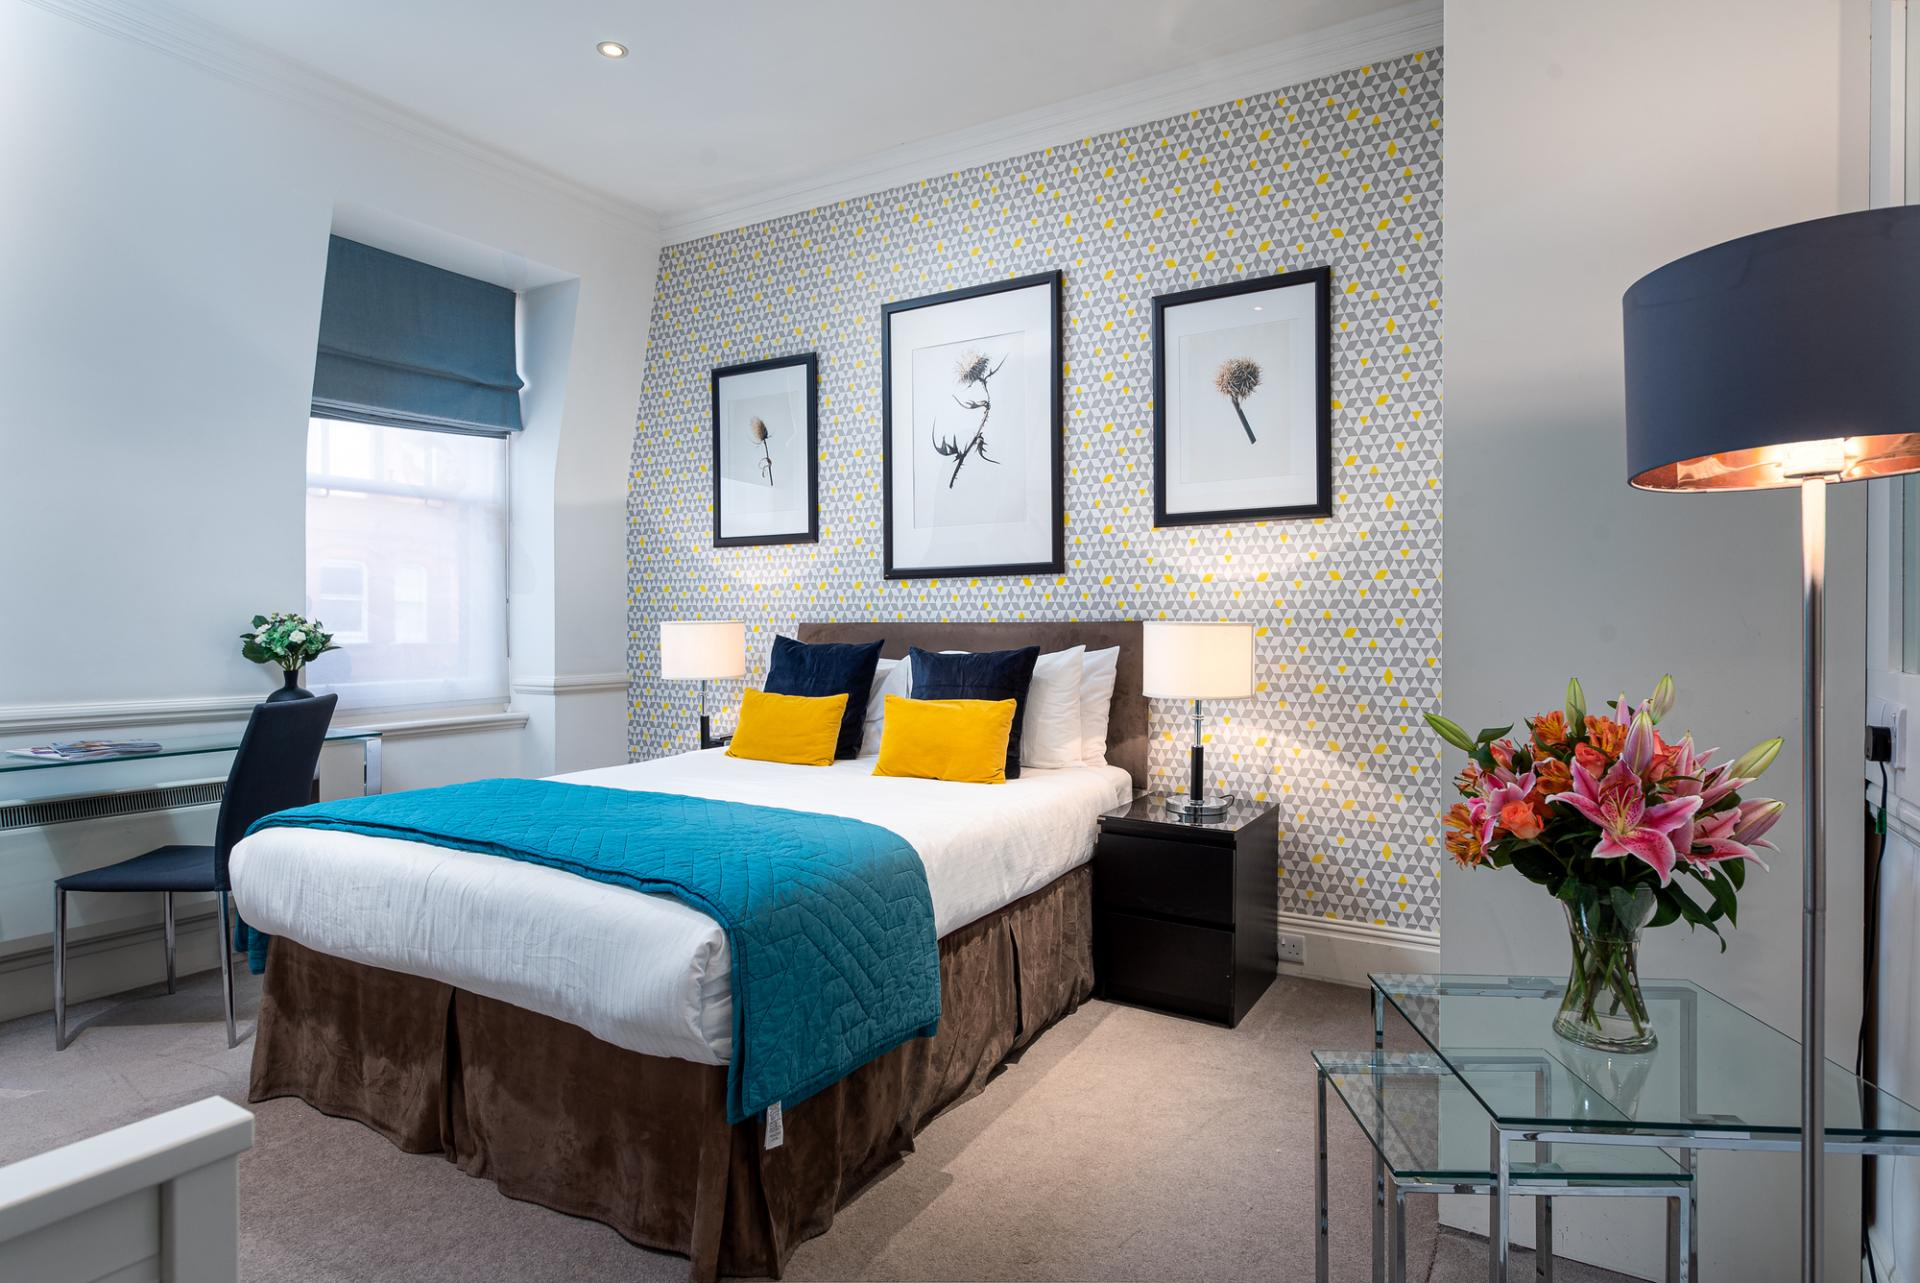 Bed at Draycott Place Serviced Apartments, Chelsea, London - Citybase Apartments